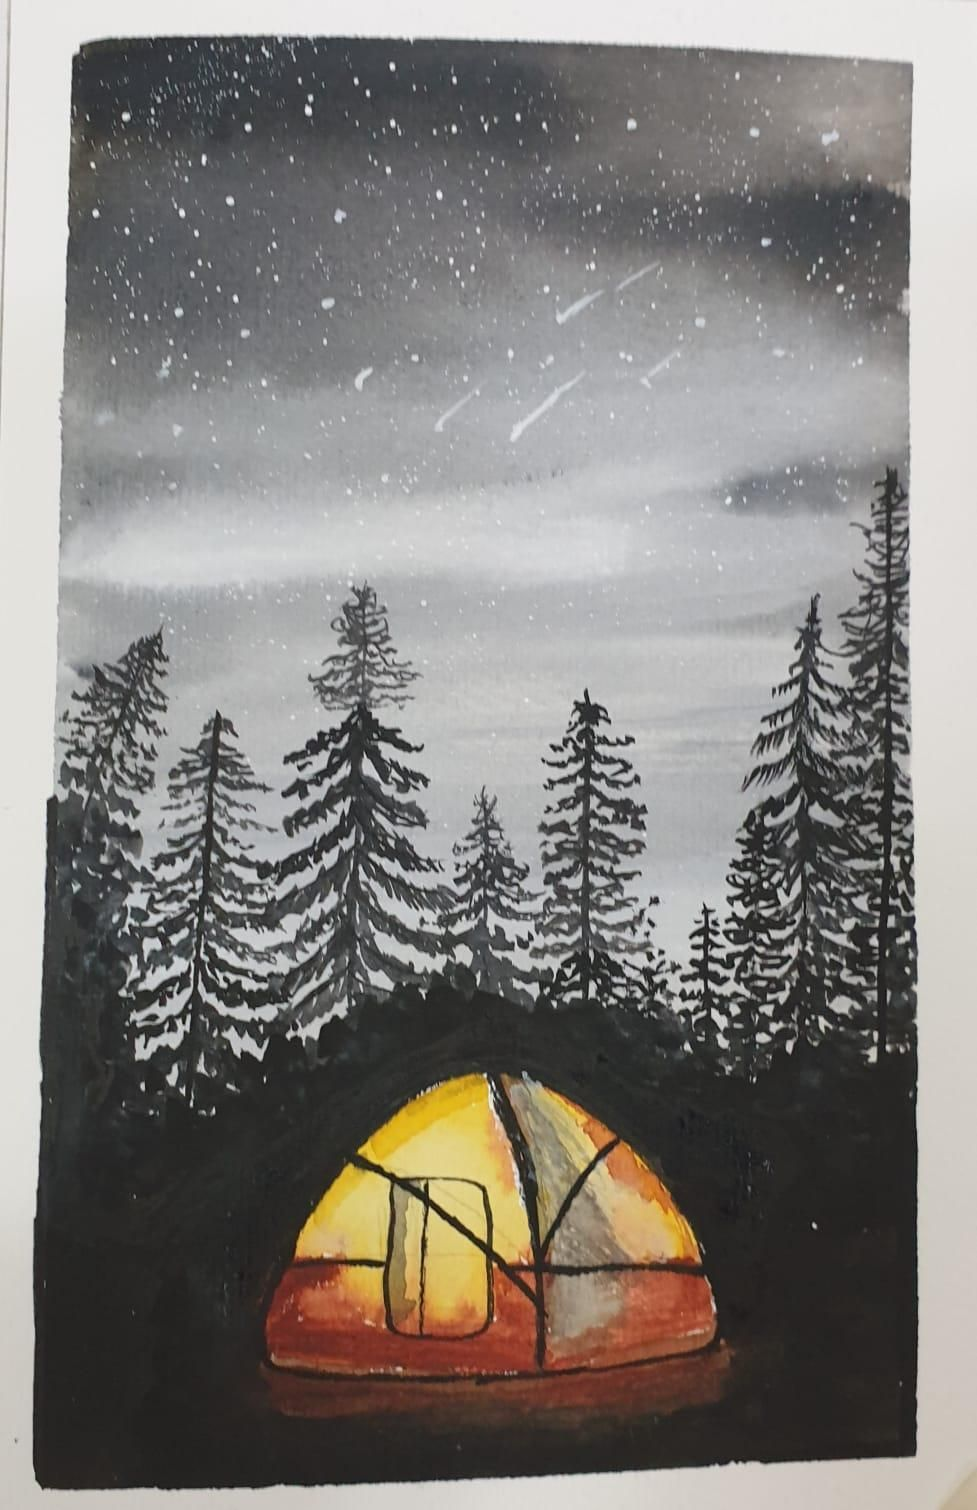 camp under the stars - image 2 - student project